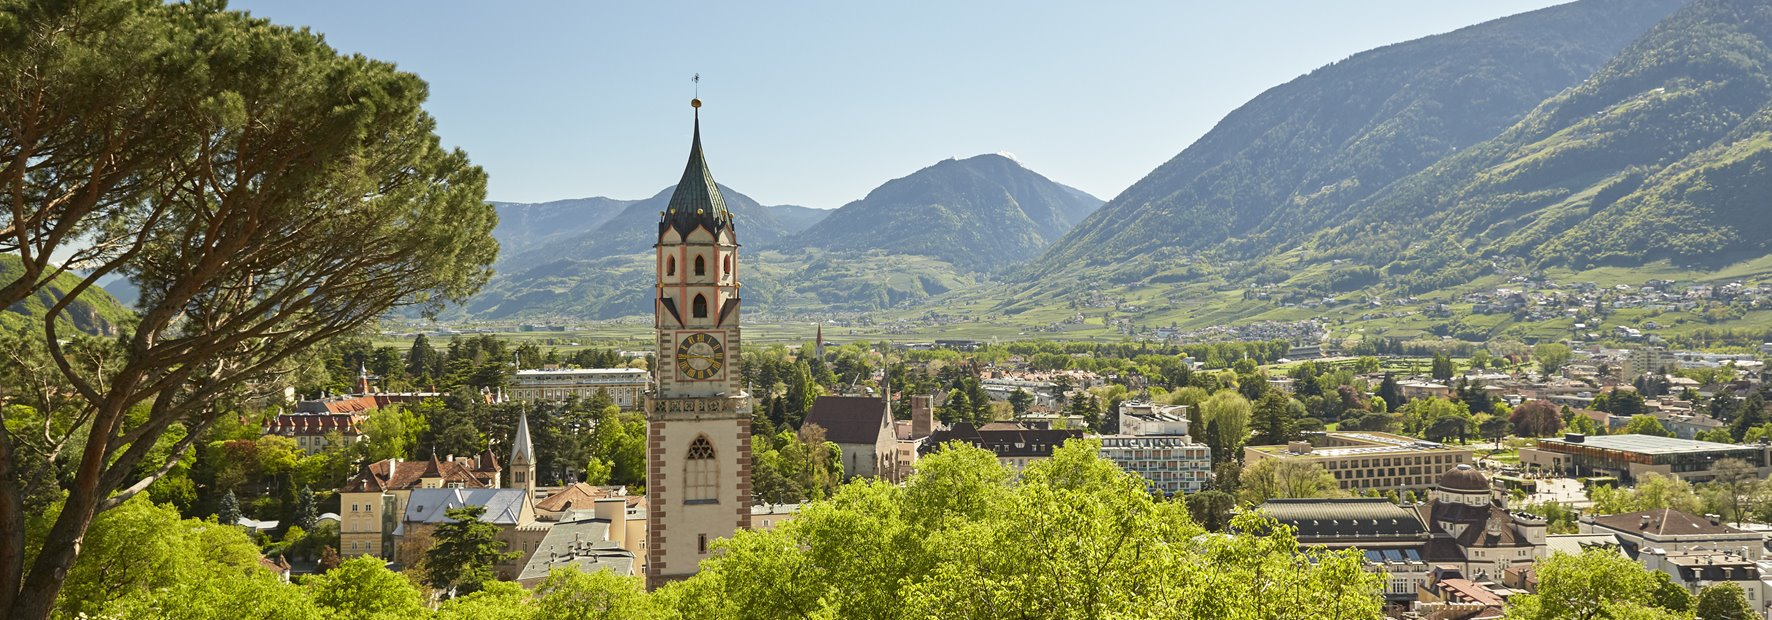 Discover the Mediterranean city of Meran